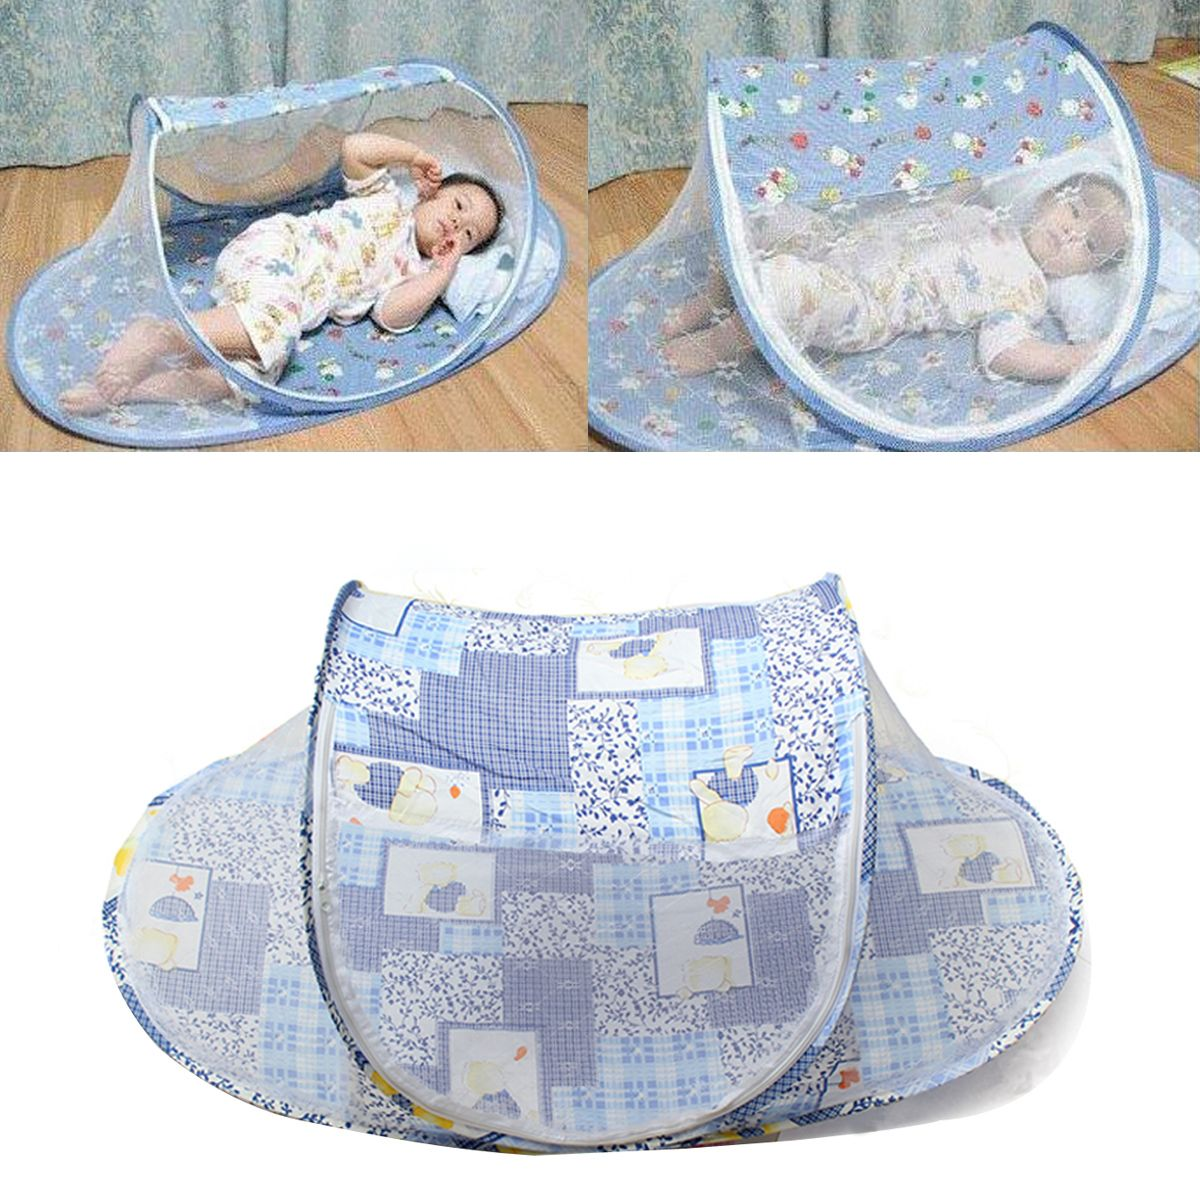 Portable Foldable Baby Mosquito Tent Travel Infant Bed Net Instant Crib Pop Up  sc 1 st  Pinterest & Portable Foldable Baby Mosquito Tent Travel Infant Bed Net Instant ...